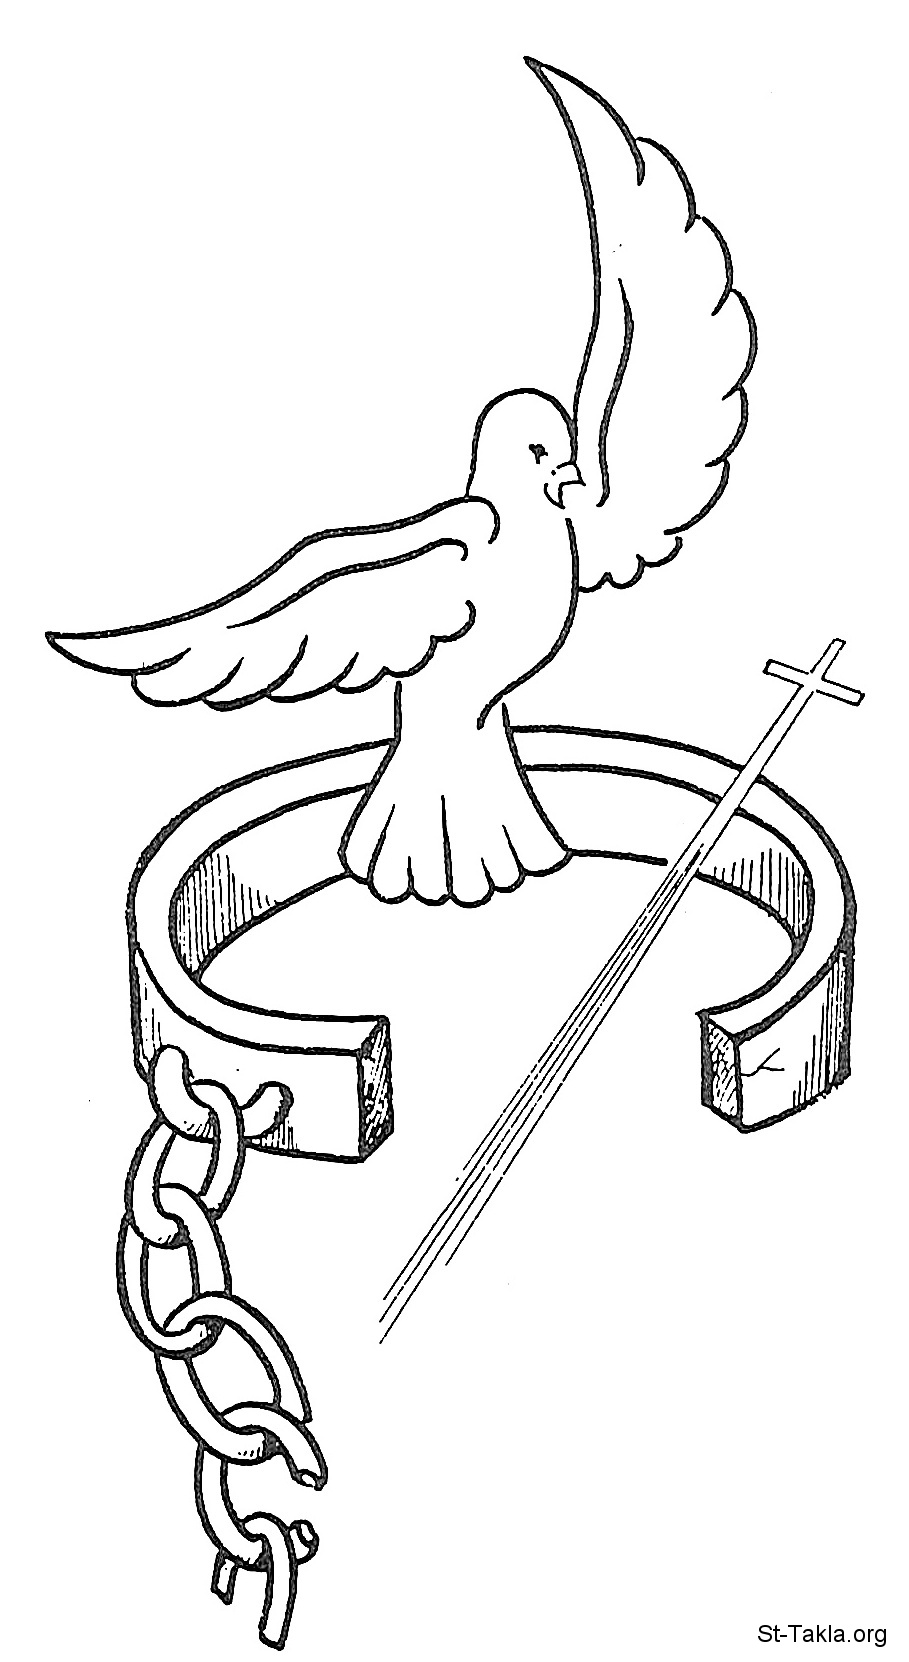 St-Takla.org Image: Free dove, freedom from shackles and cuffs through the Holy Cross ���� �� ���� ������ ����: ����� ��ɡ ������ �� ������ �� ���� ������